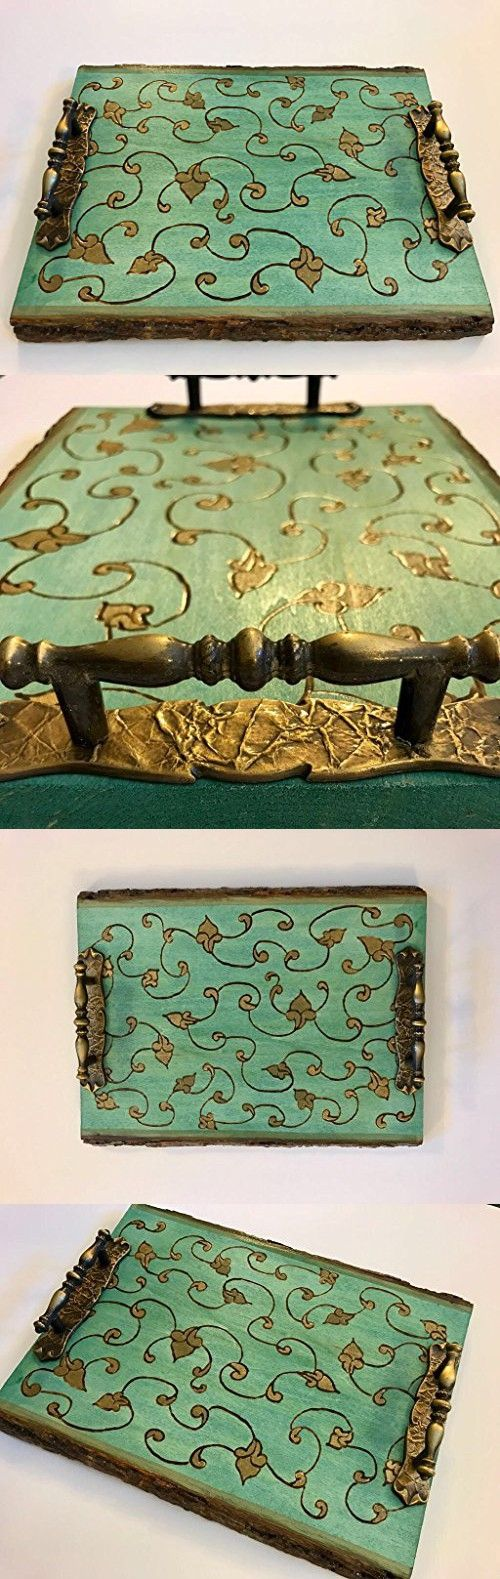 Decorative Ottoman Tray Beauteous 428 Best Decorative Trays Images On Pinterest  Decorative Trays Decorating Design